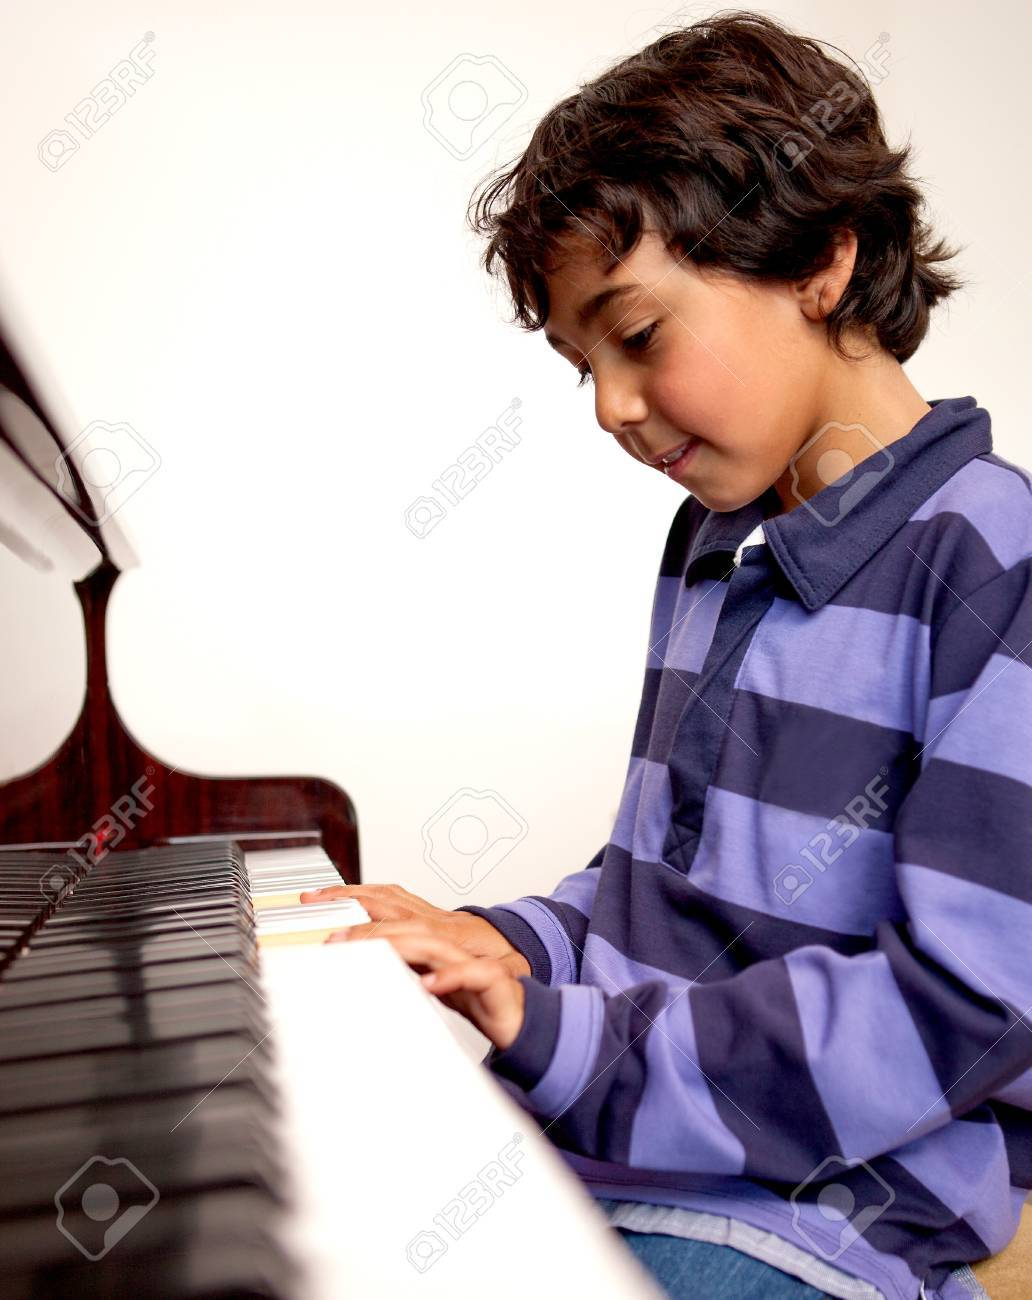 14024276-Cute-boy-playing-the-piano-at-home--Stock-Photo-music.jpg